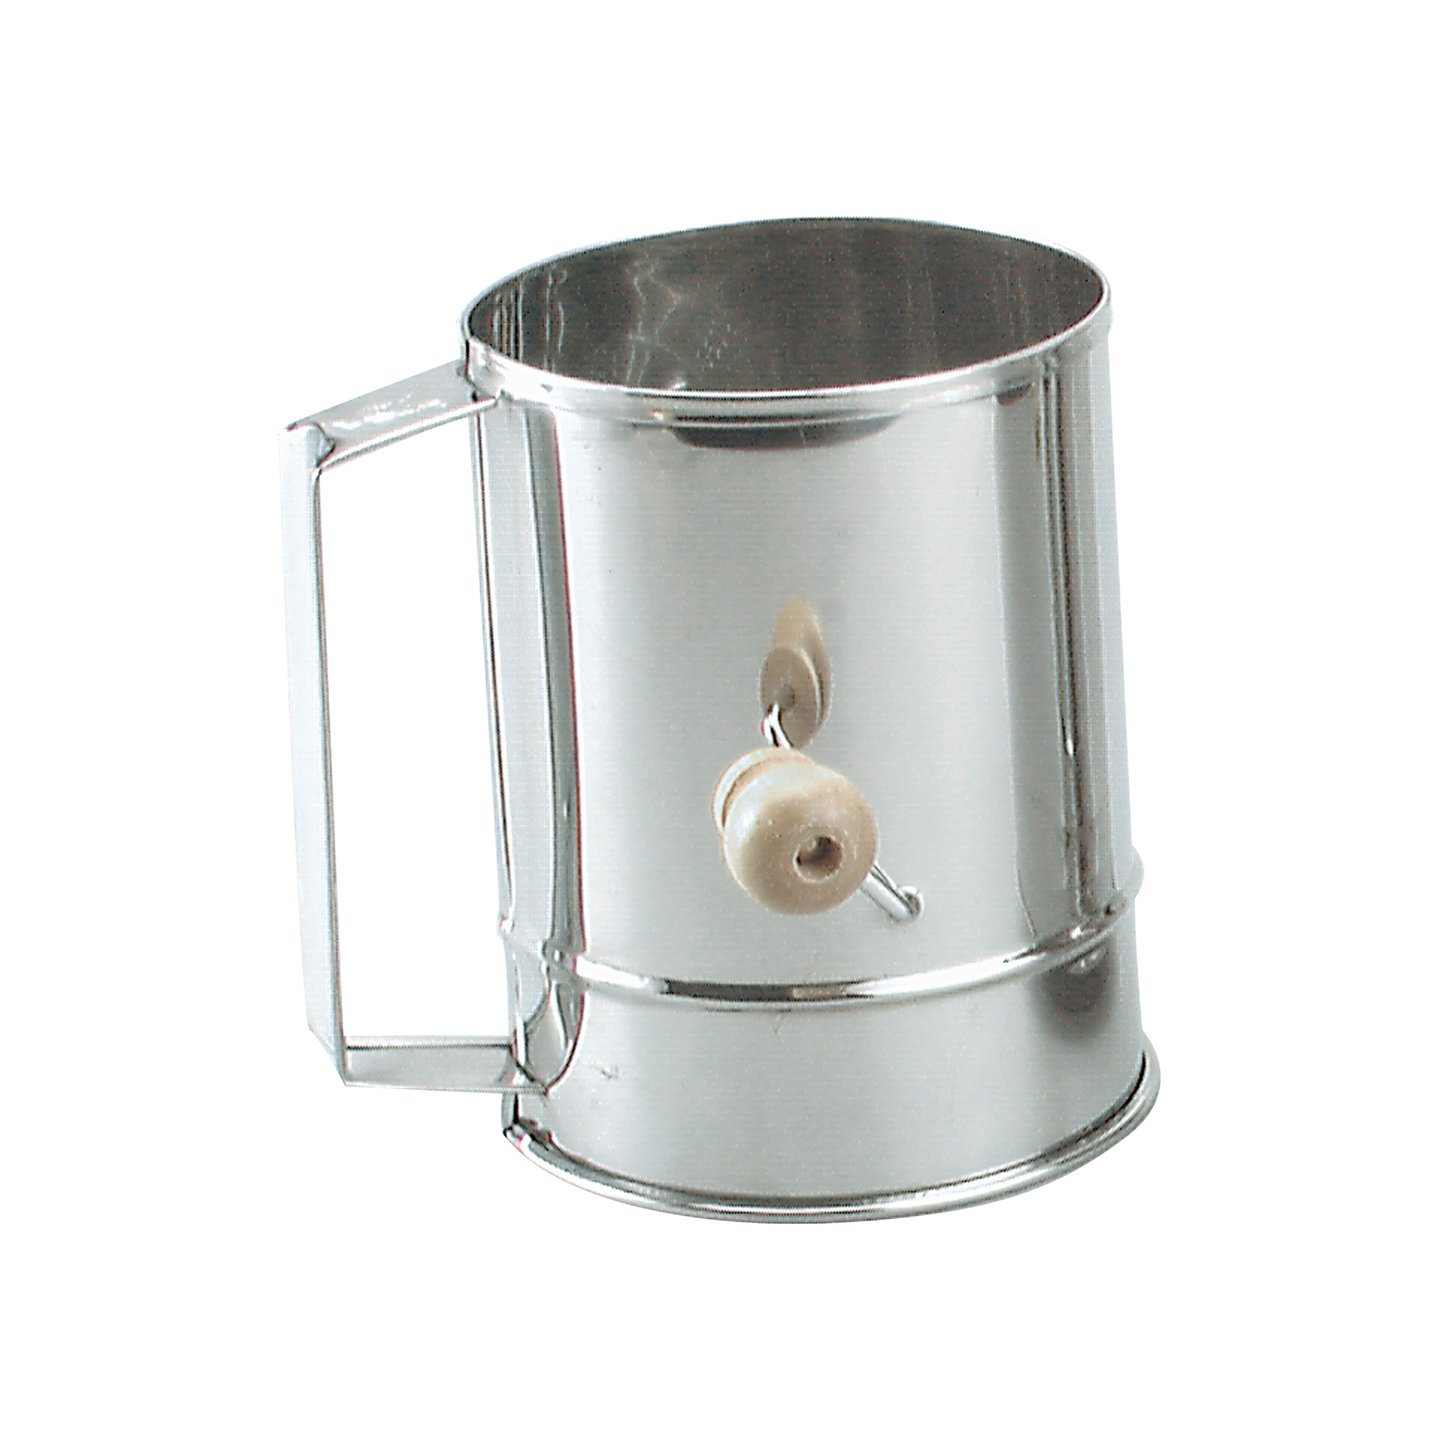 Stainless Steel Crank Sifter 5 Cup